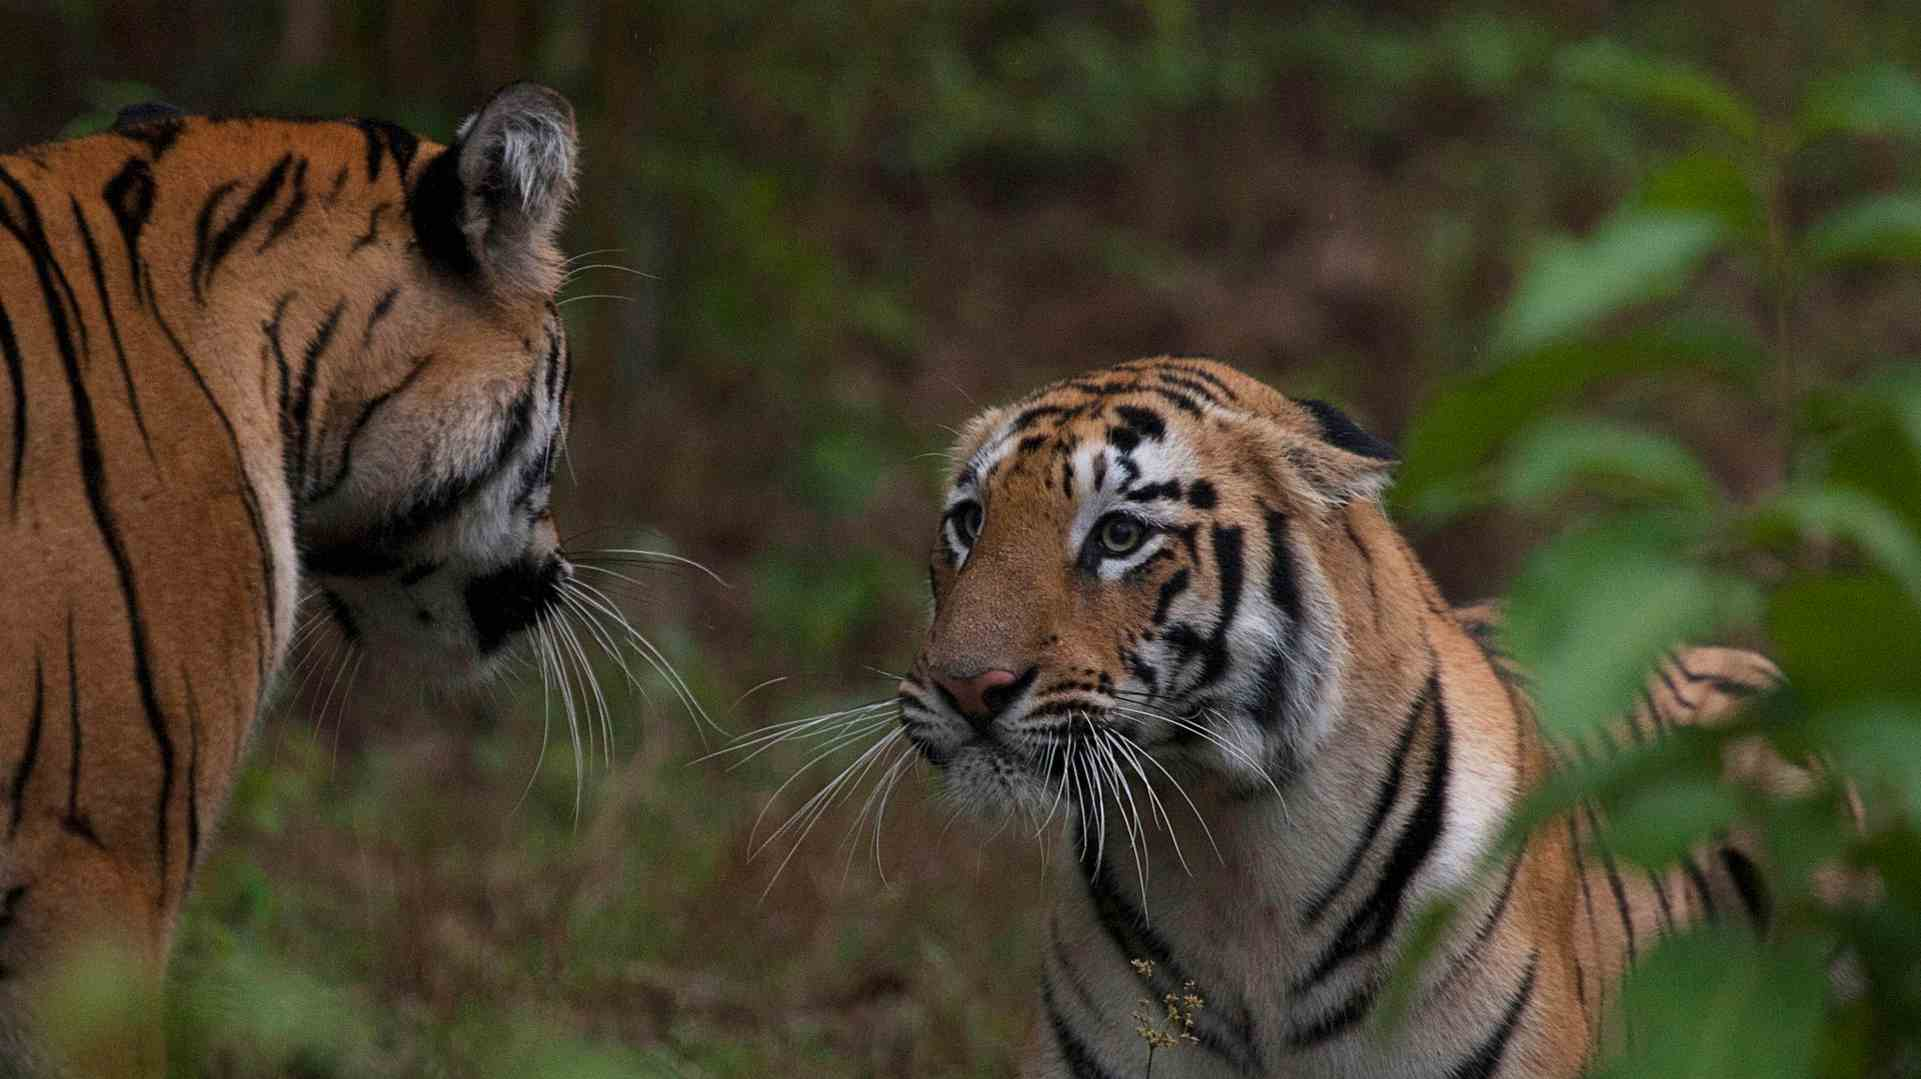 Doubling tiger population by 2022 unrealistic; experts cite scarce prey, rampant poaching